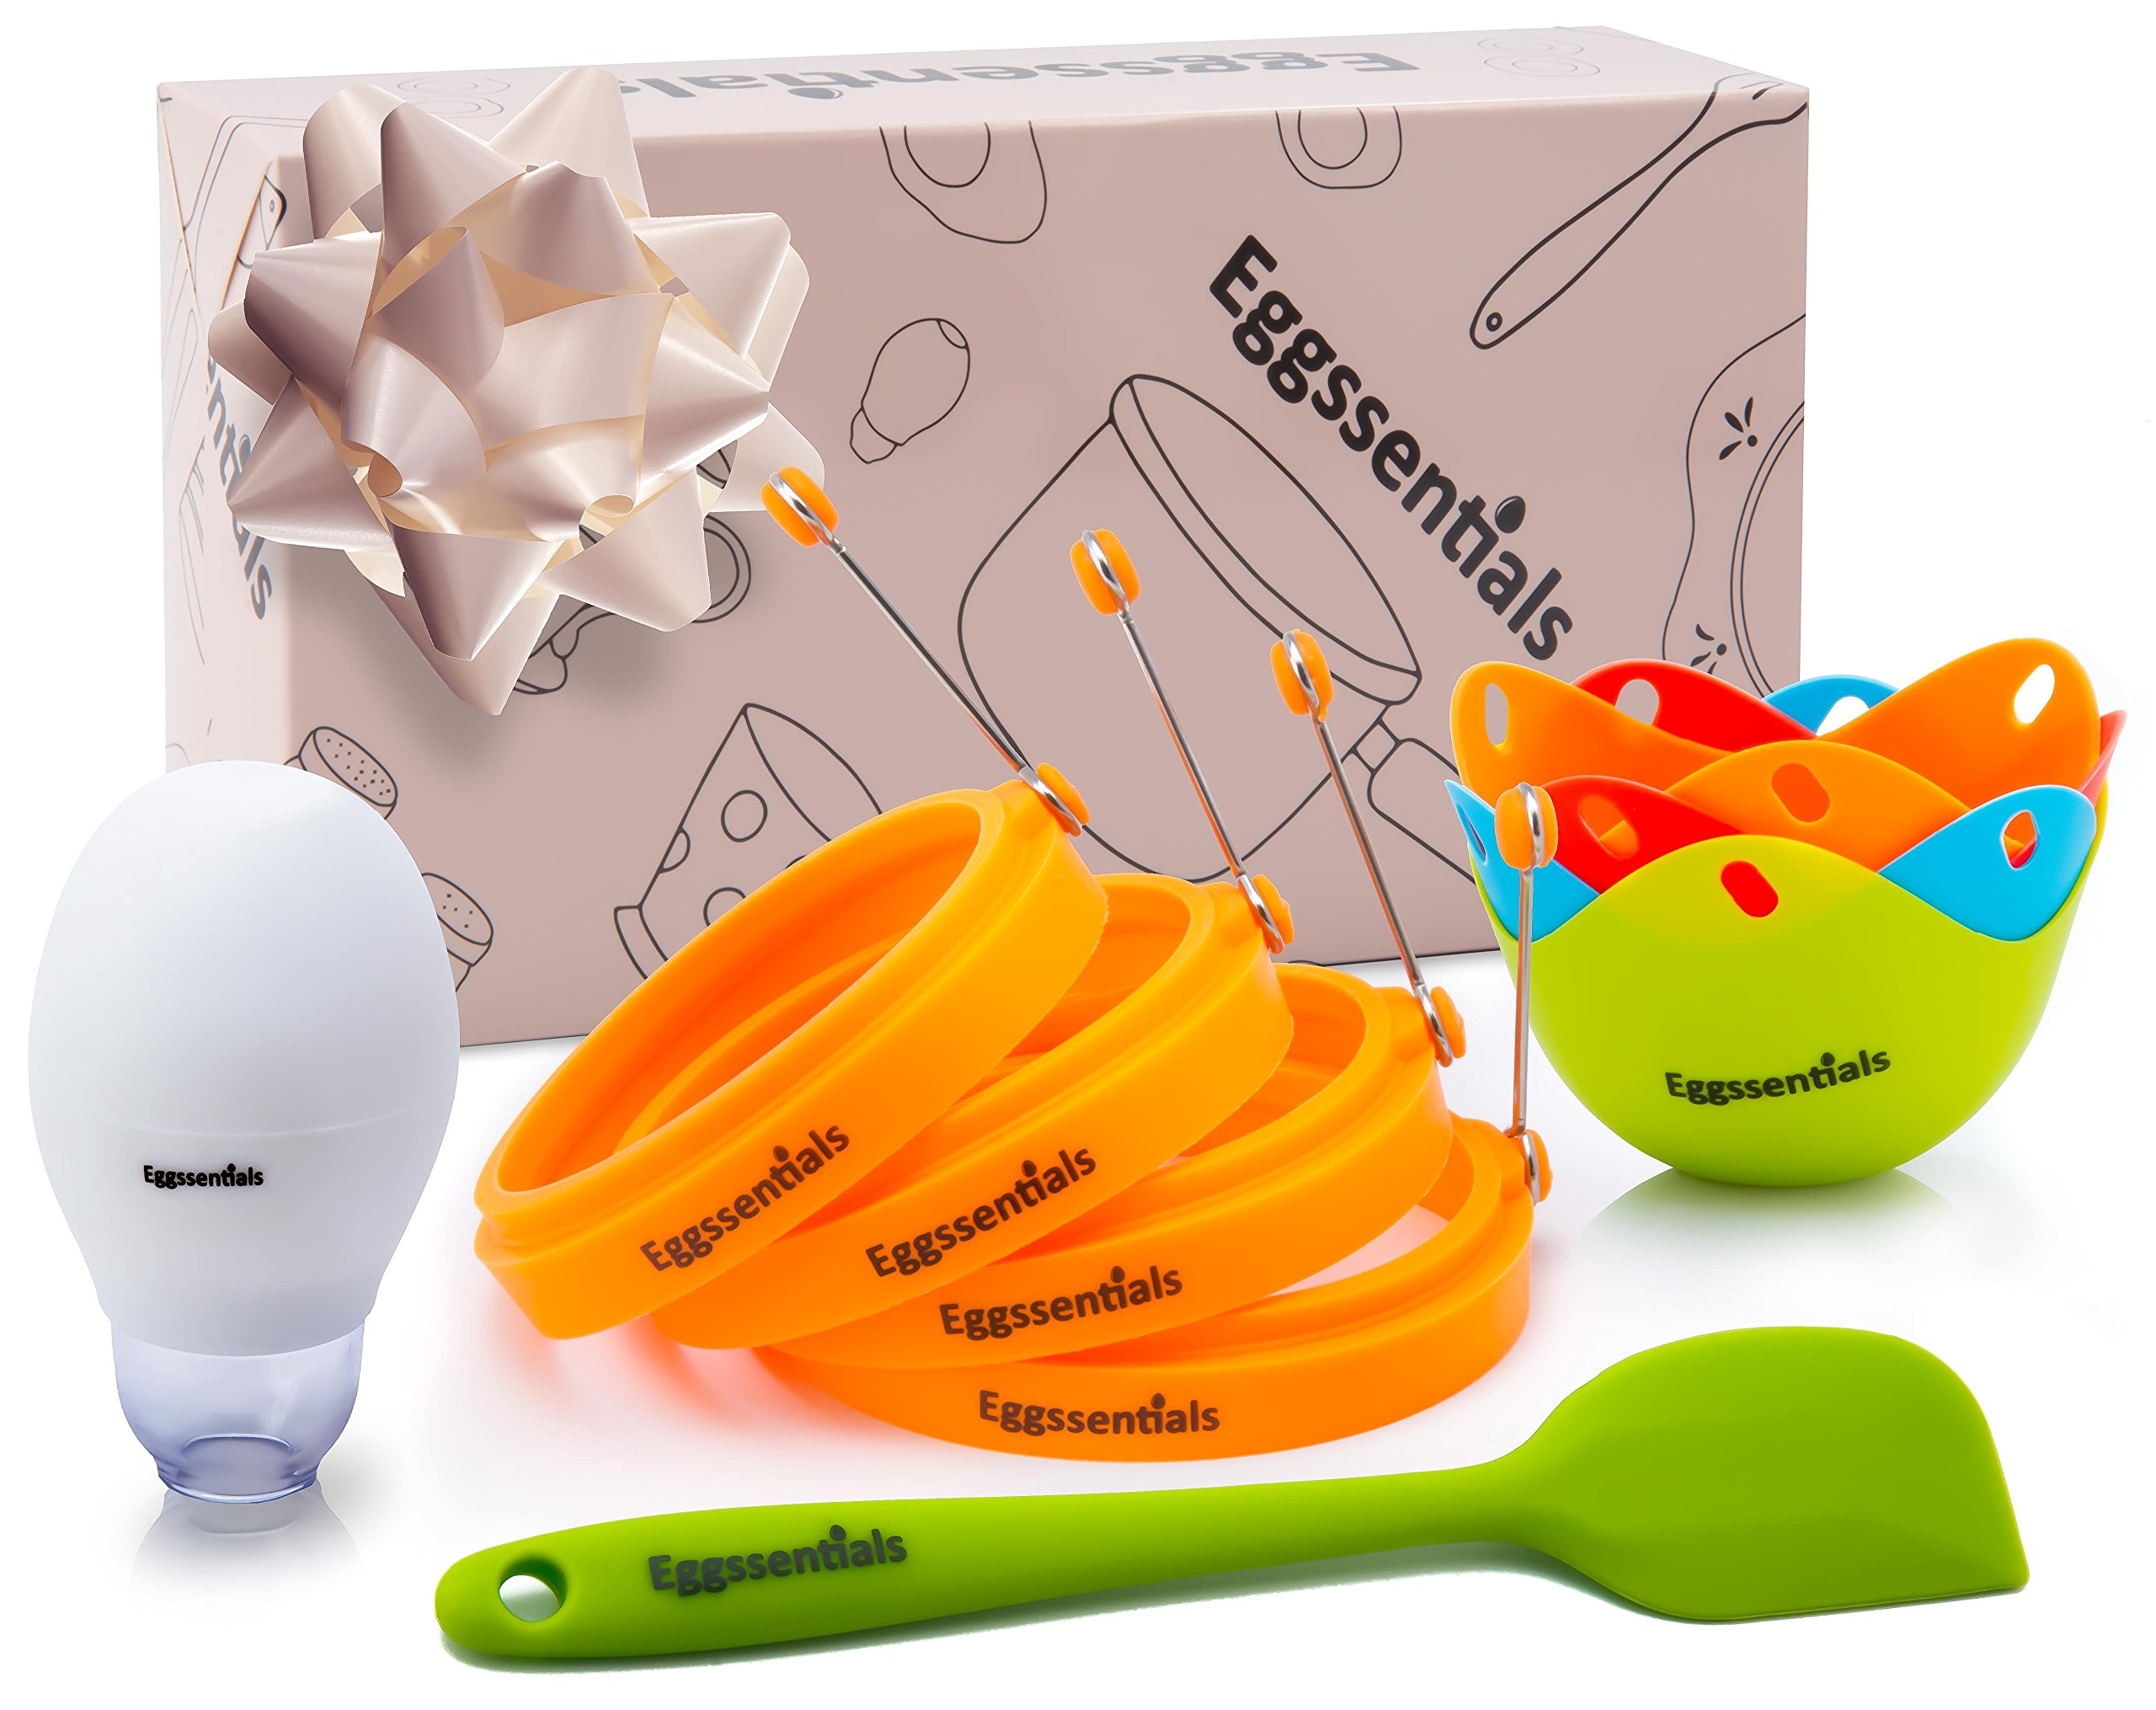 Eggssentials 4 Egg Ring Set | Egg Rings Kit includes 4 Egg Poacher Cups | 1 Egg Yolk Separator| 1 Silicone Spatula| In Gift Box